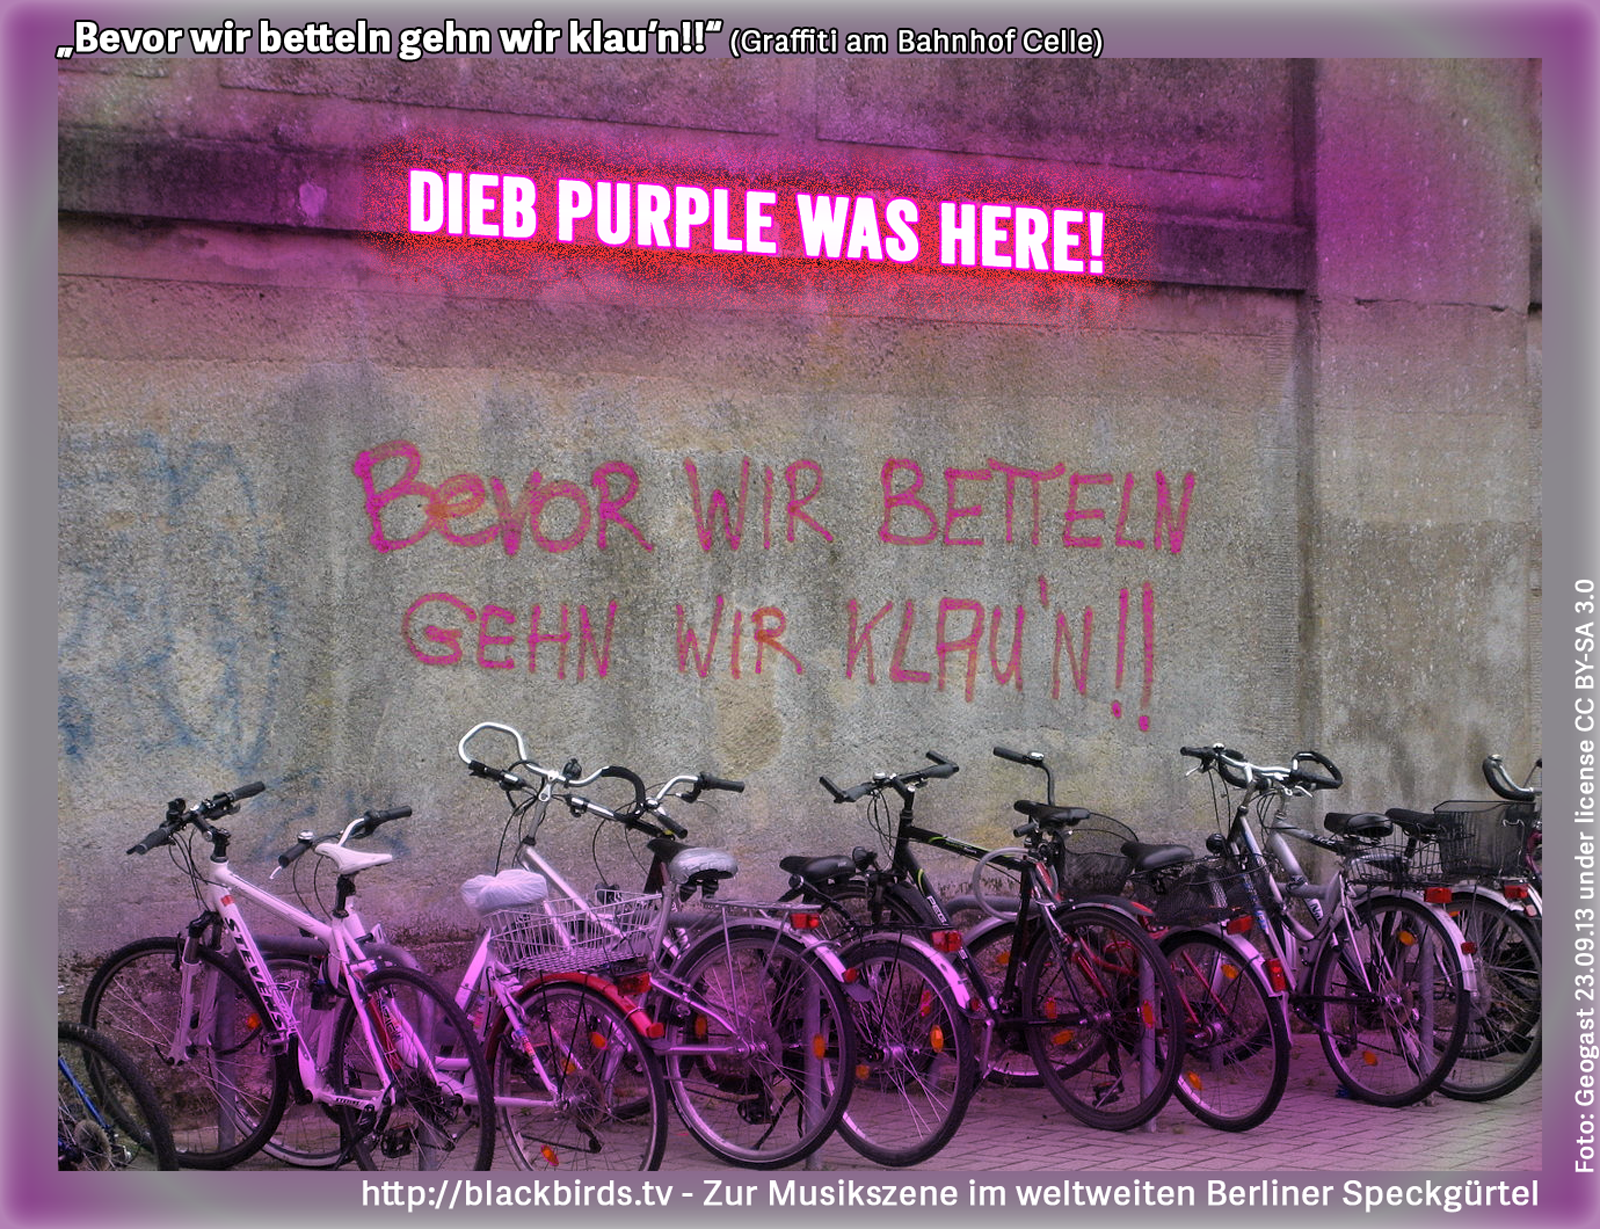 Dieb Purple was here! Bevor wir betteln gehn wir klau'n (Graffiti am Bahnhof Celle) - Rights reserved